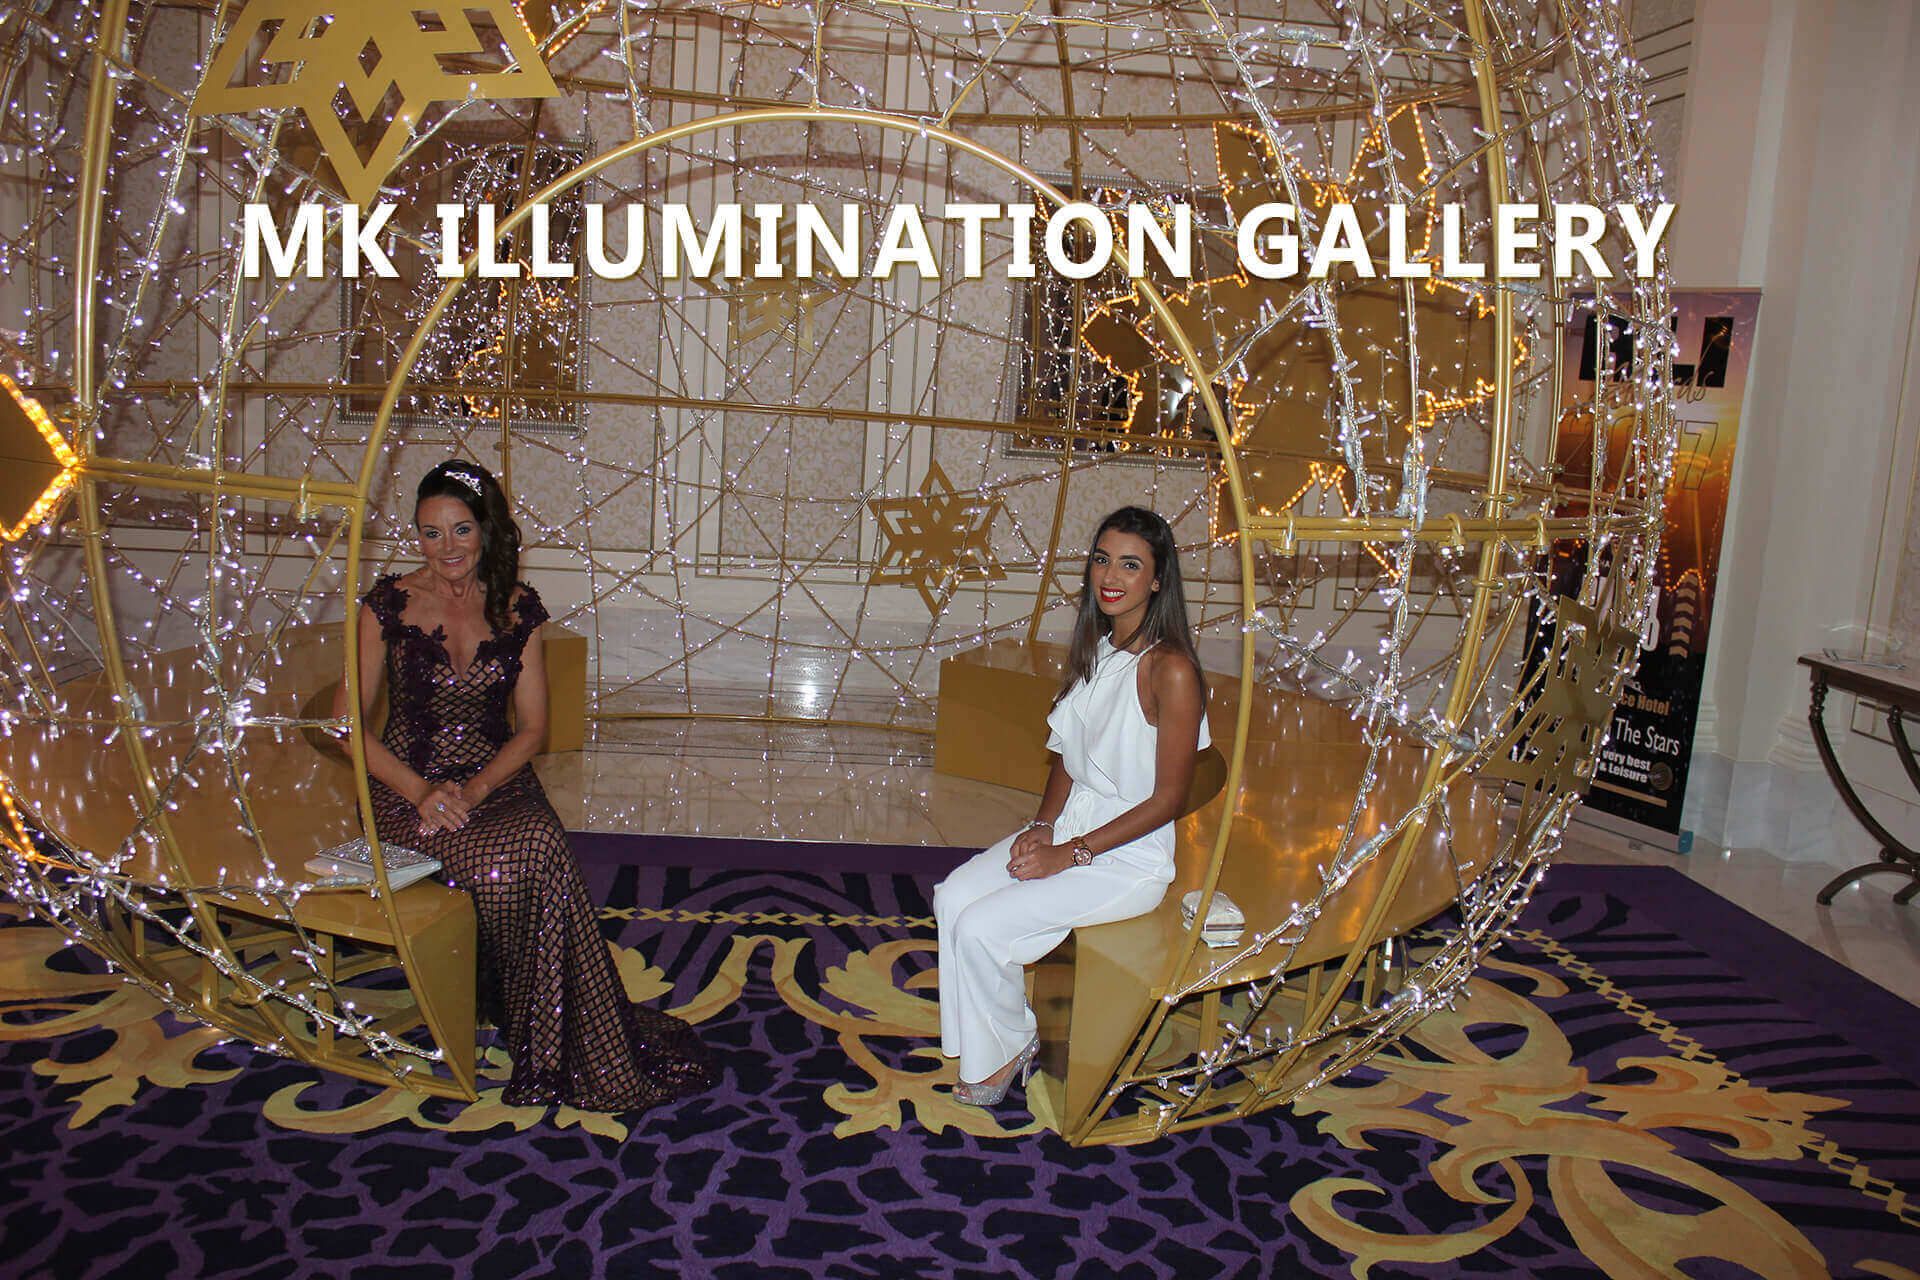 MK Illumination Gallery